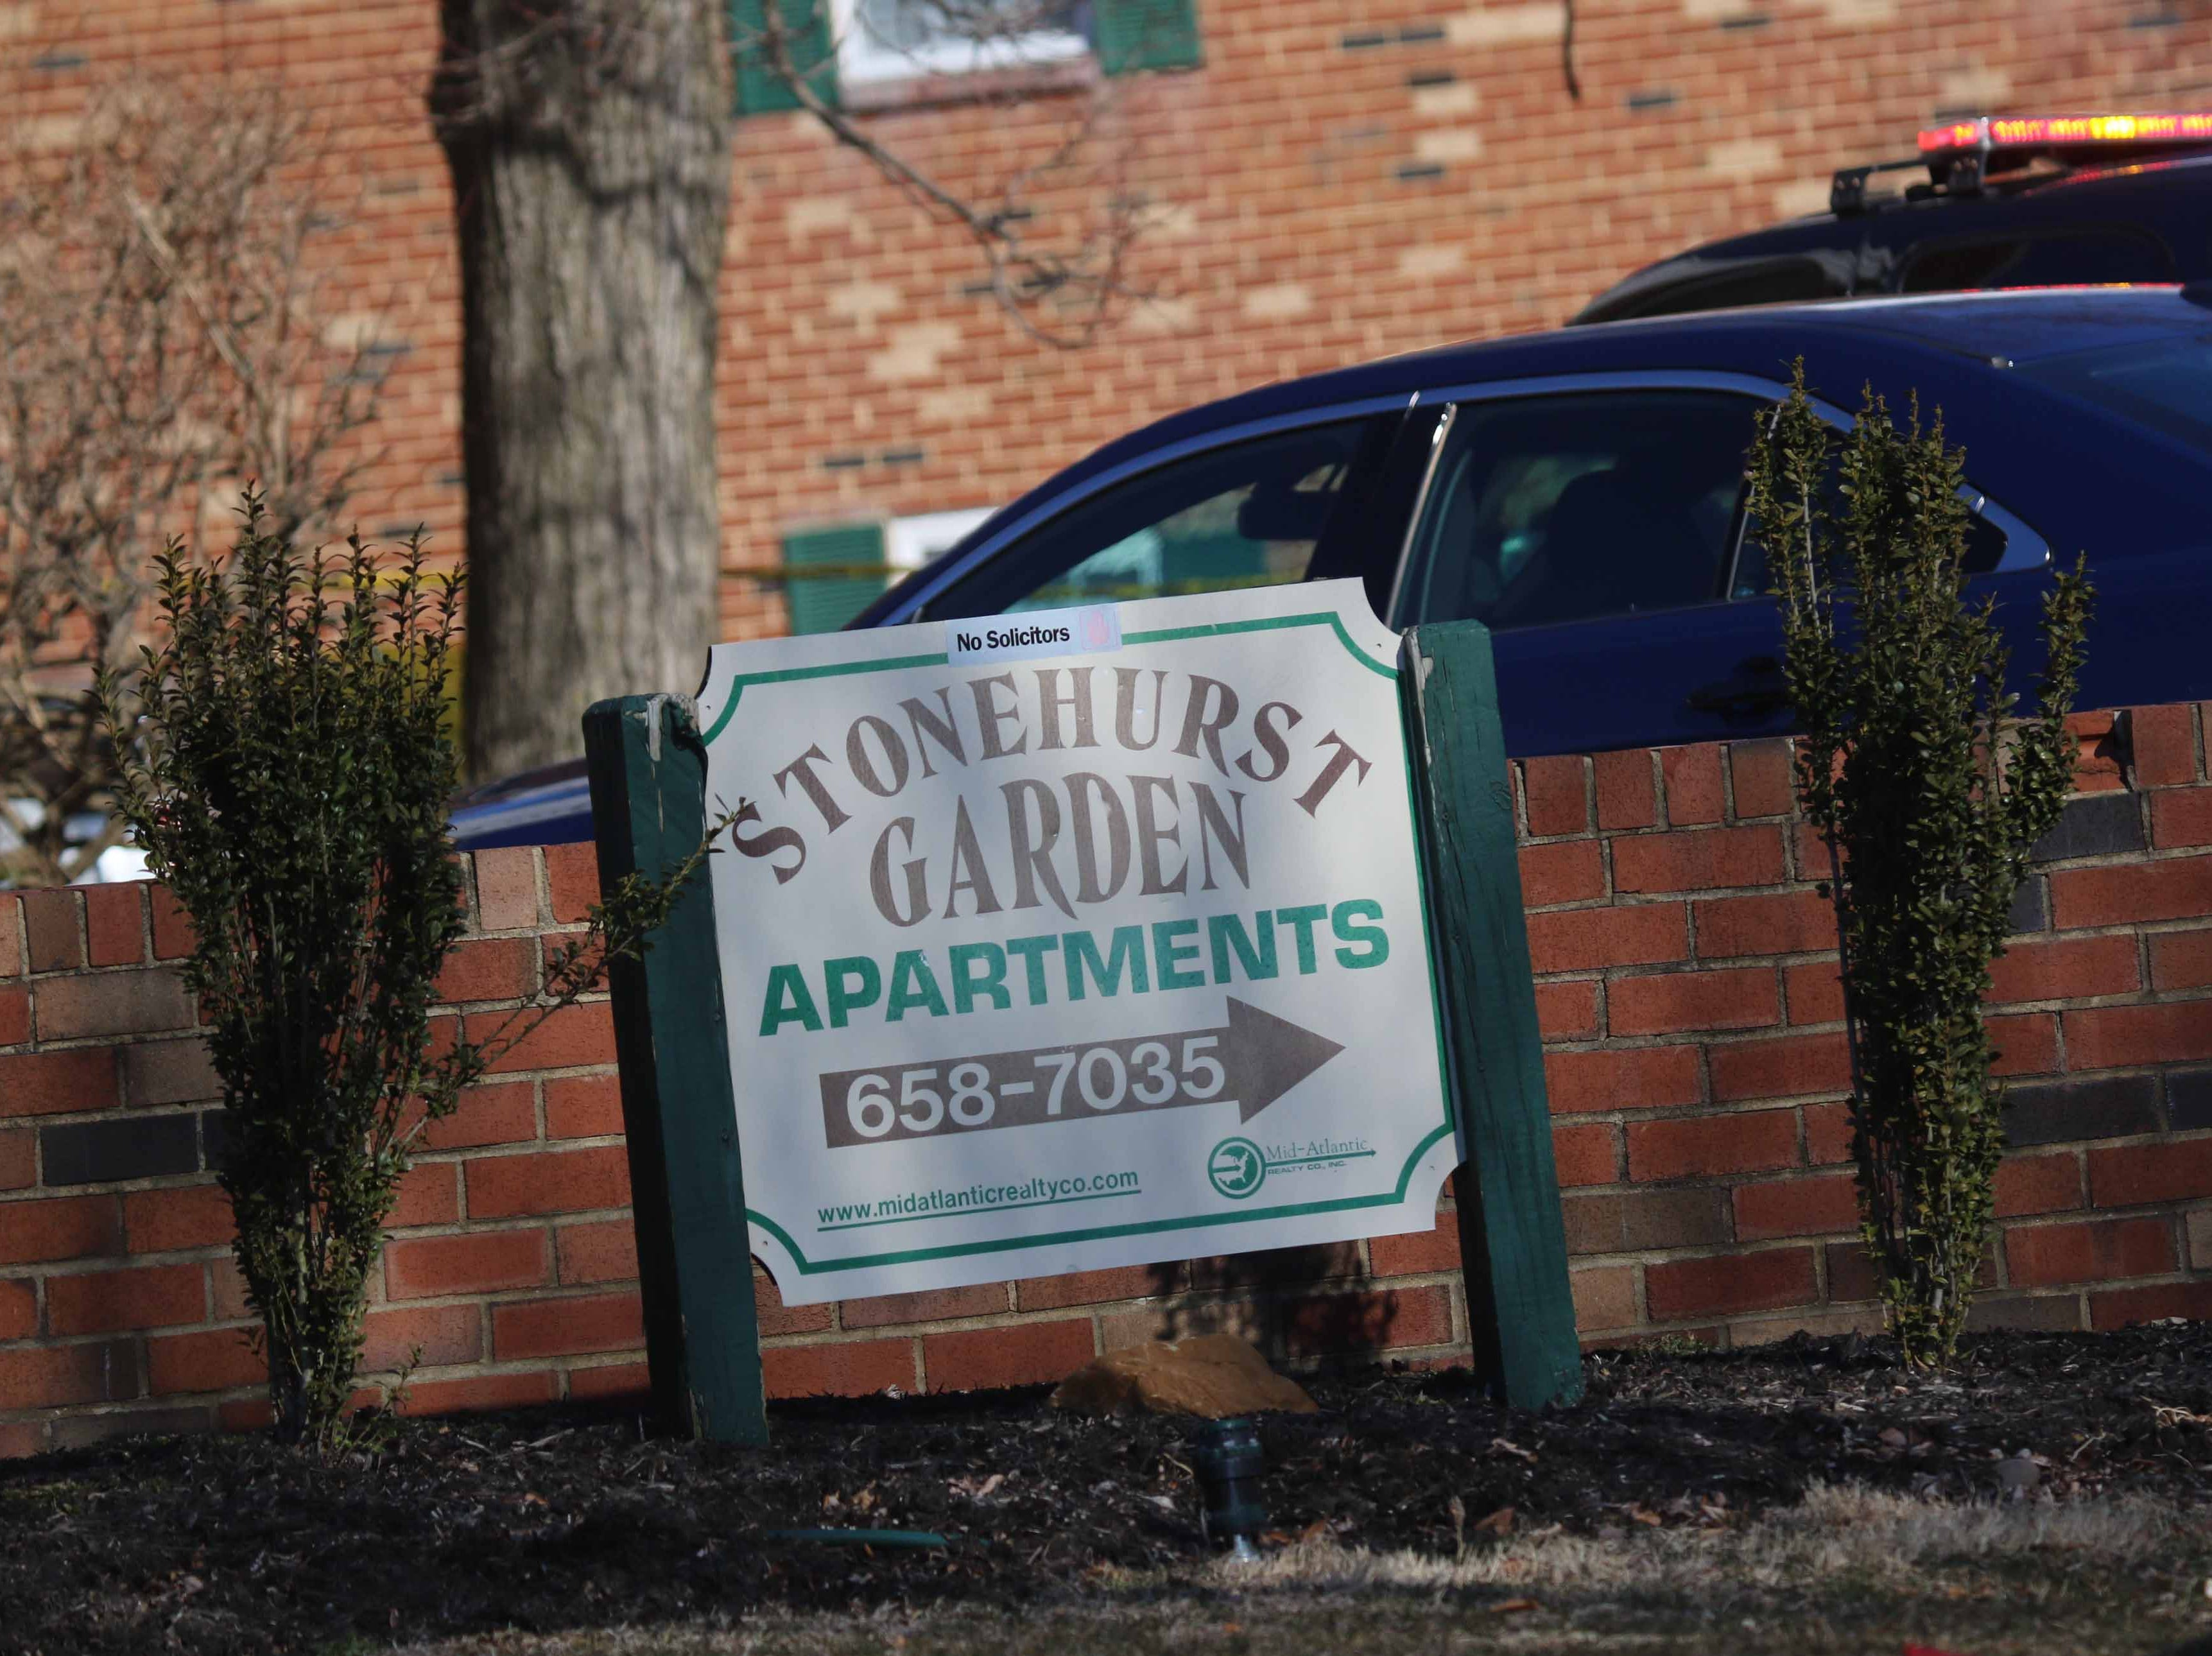 Stonehurst Garden Apartments where Laura Connell and Walton were living.